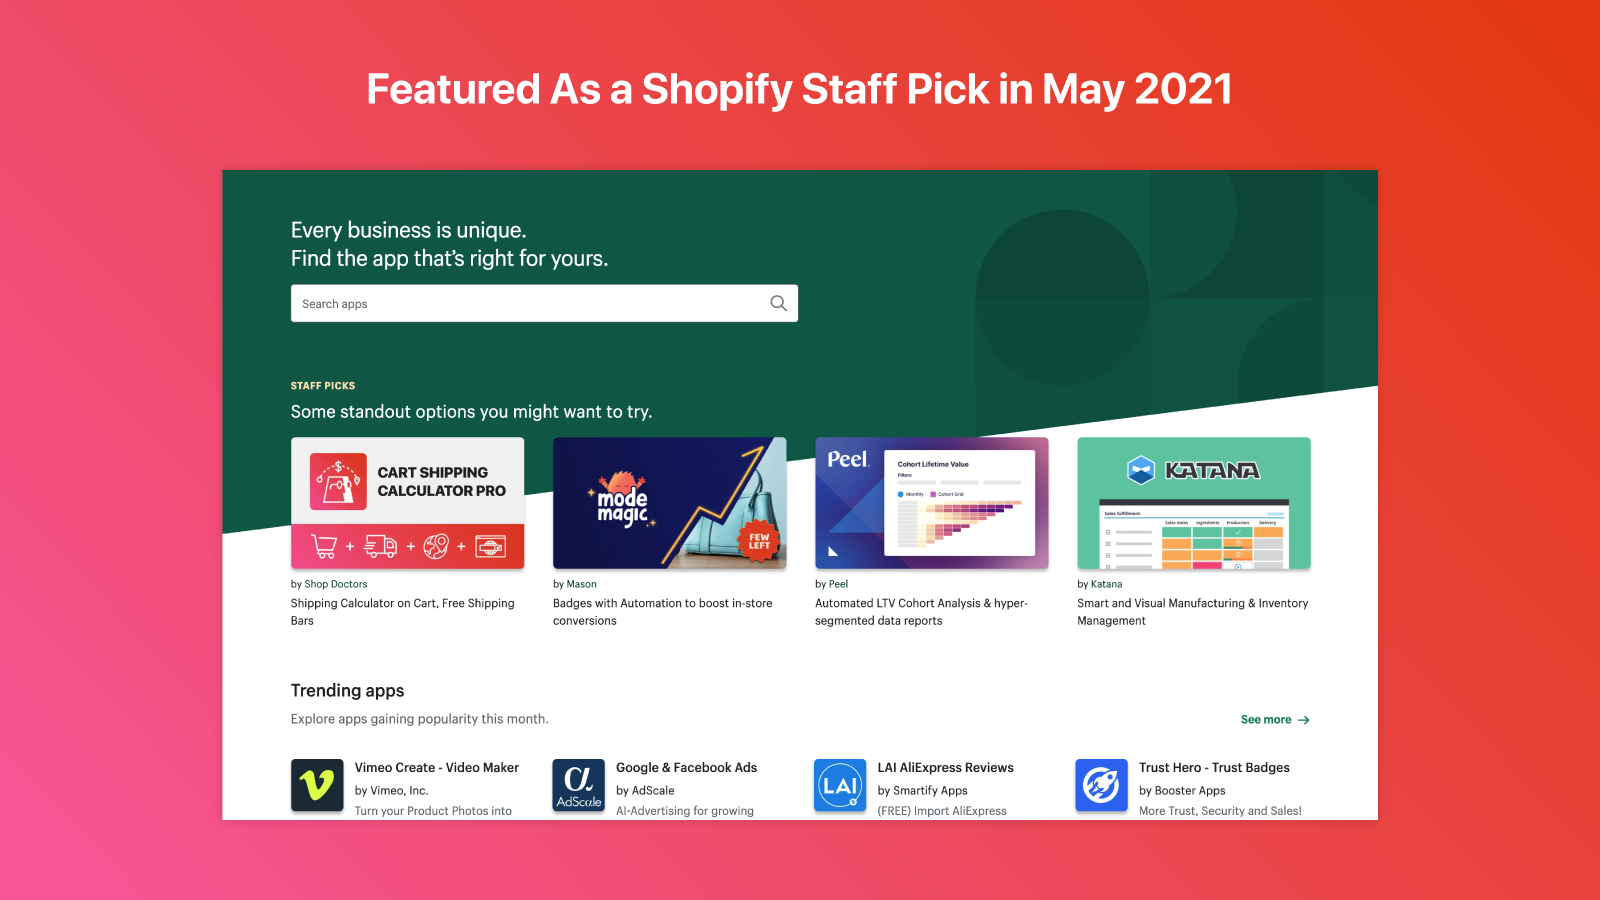 Shipping Rates Calculator Pro - Featured Staff Pick